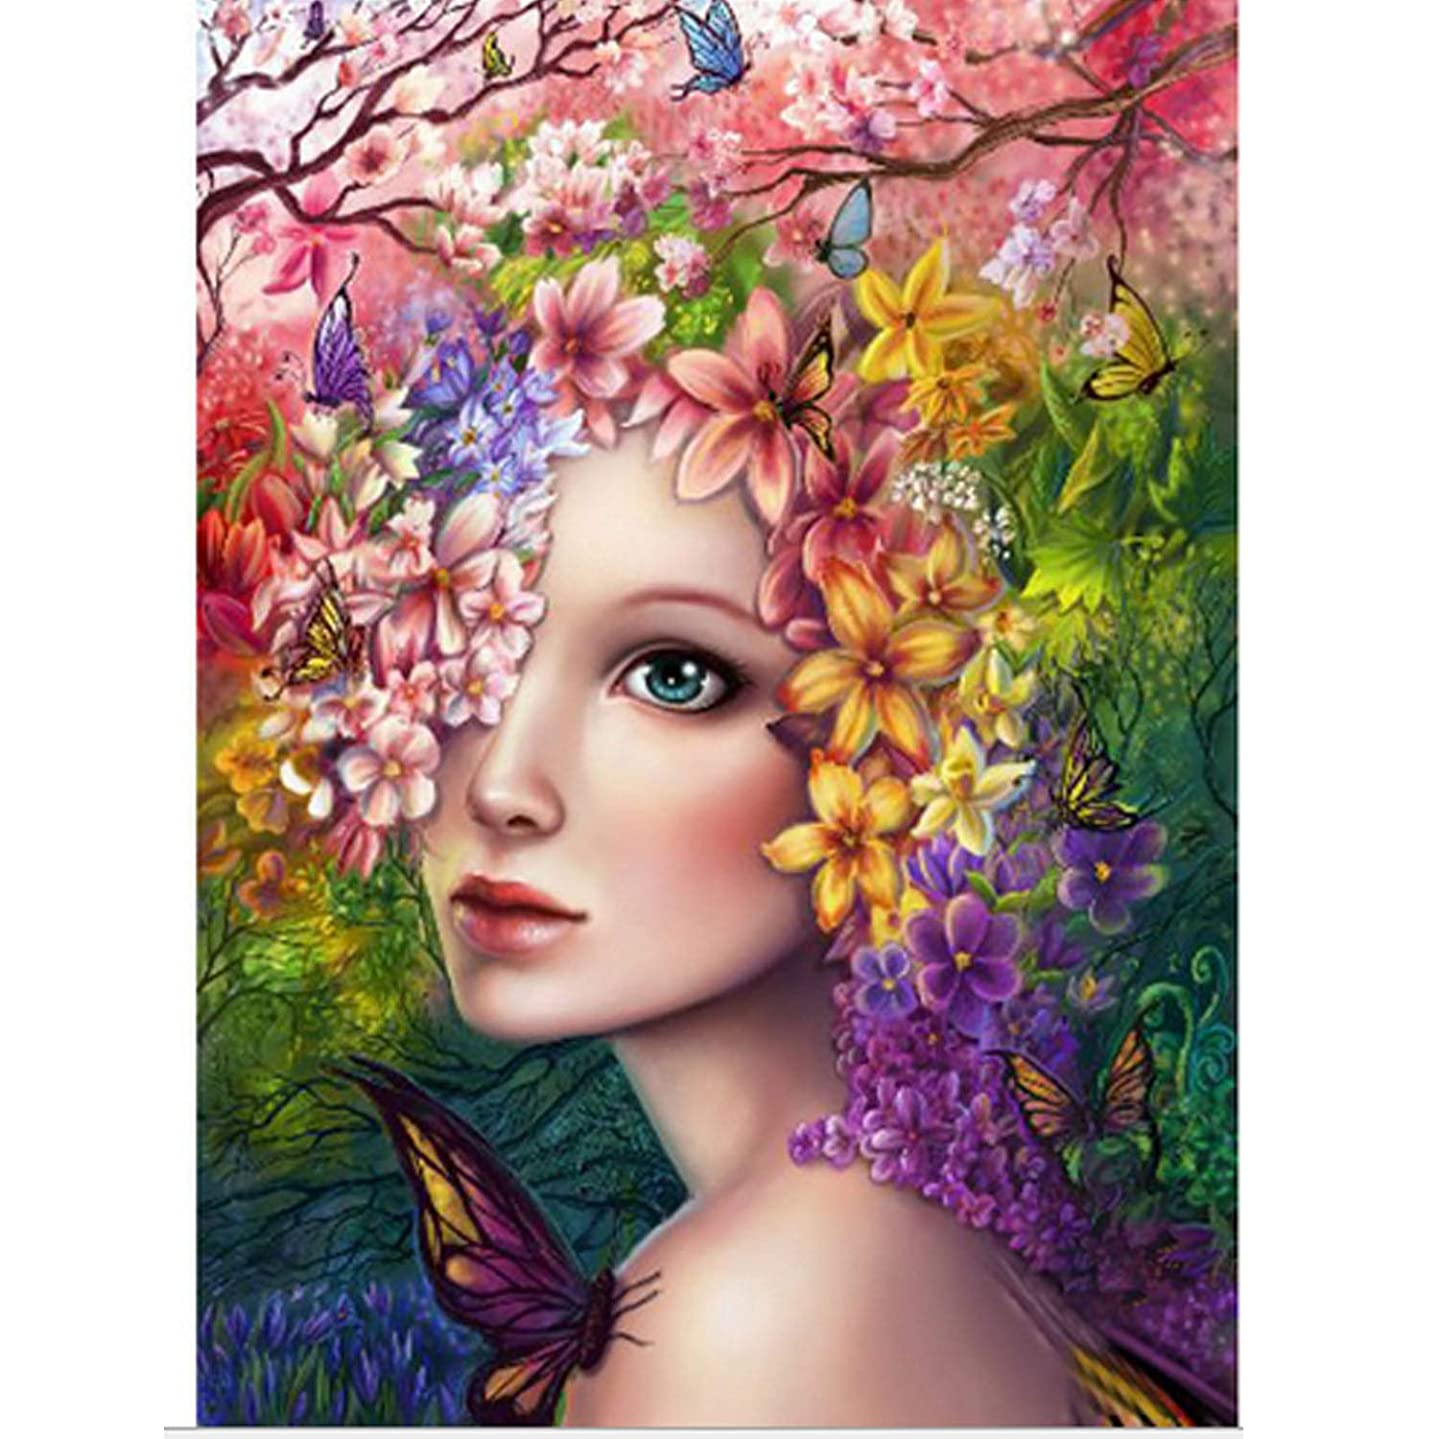 Full Drill Diamond Painting Kits for Adults for Home Art Wall Decor - Flower Fairy 20x26'' (50x65cm)